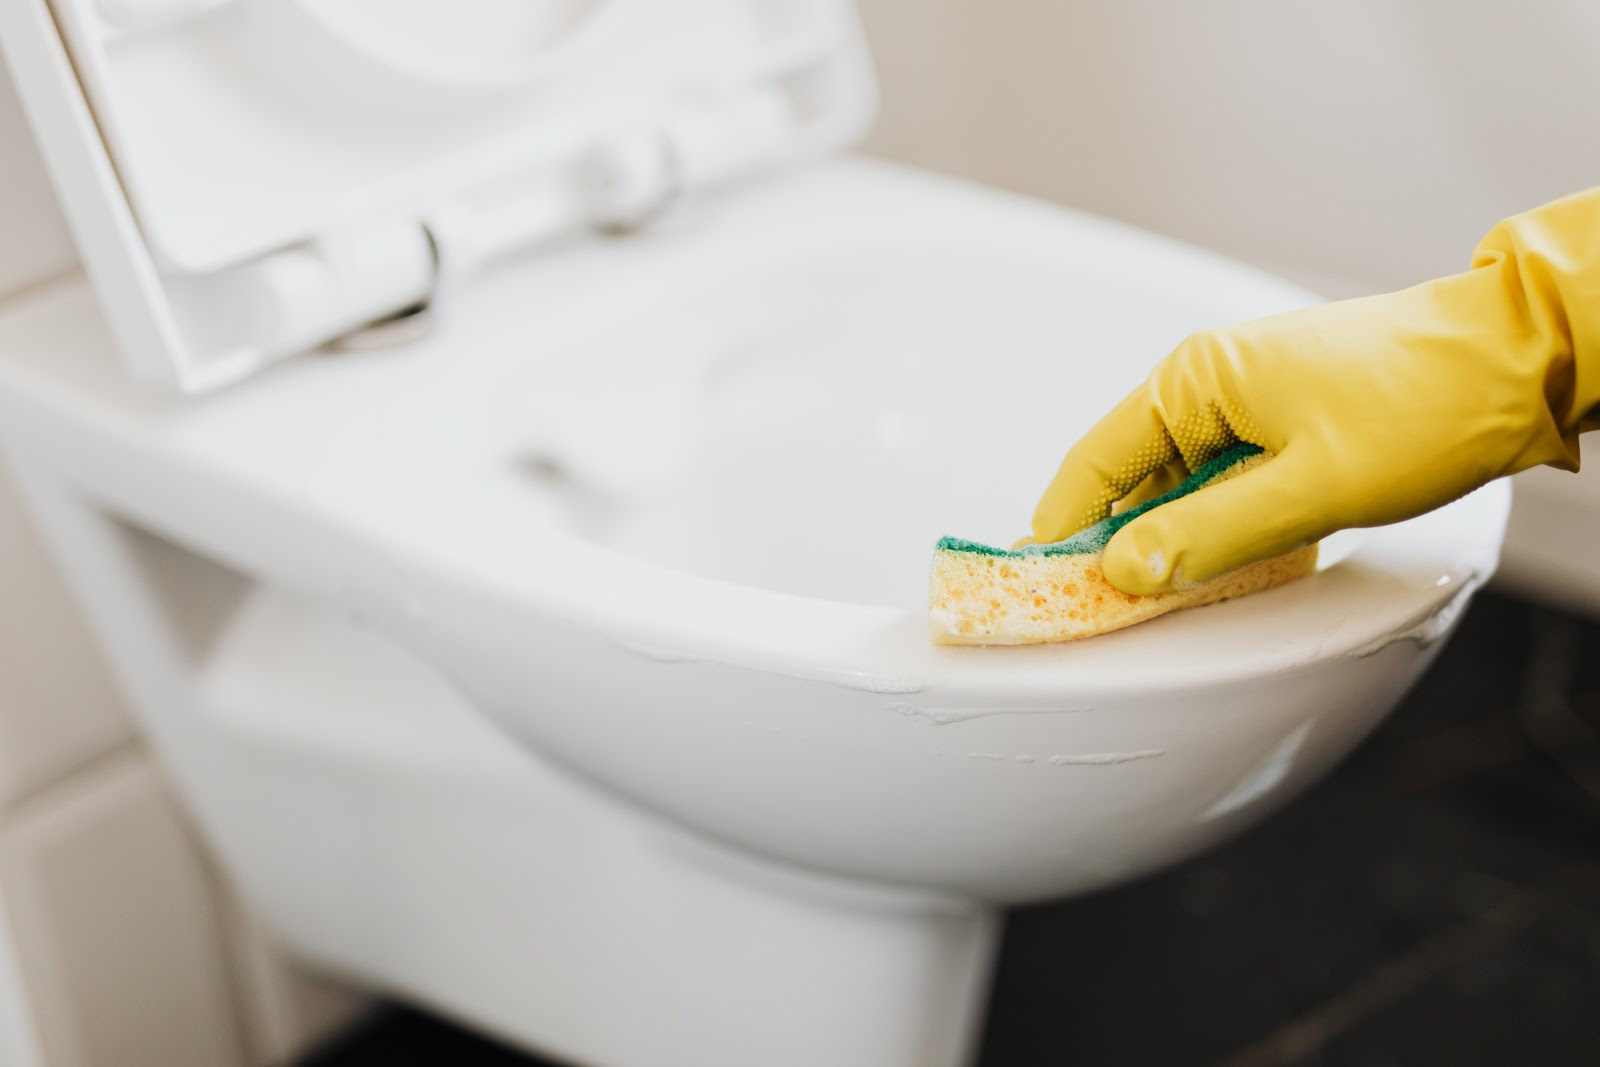 Rubber gloved hand cleaning a toilet with a sponge.